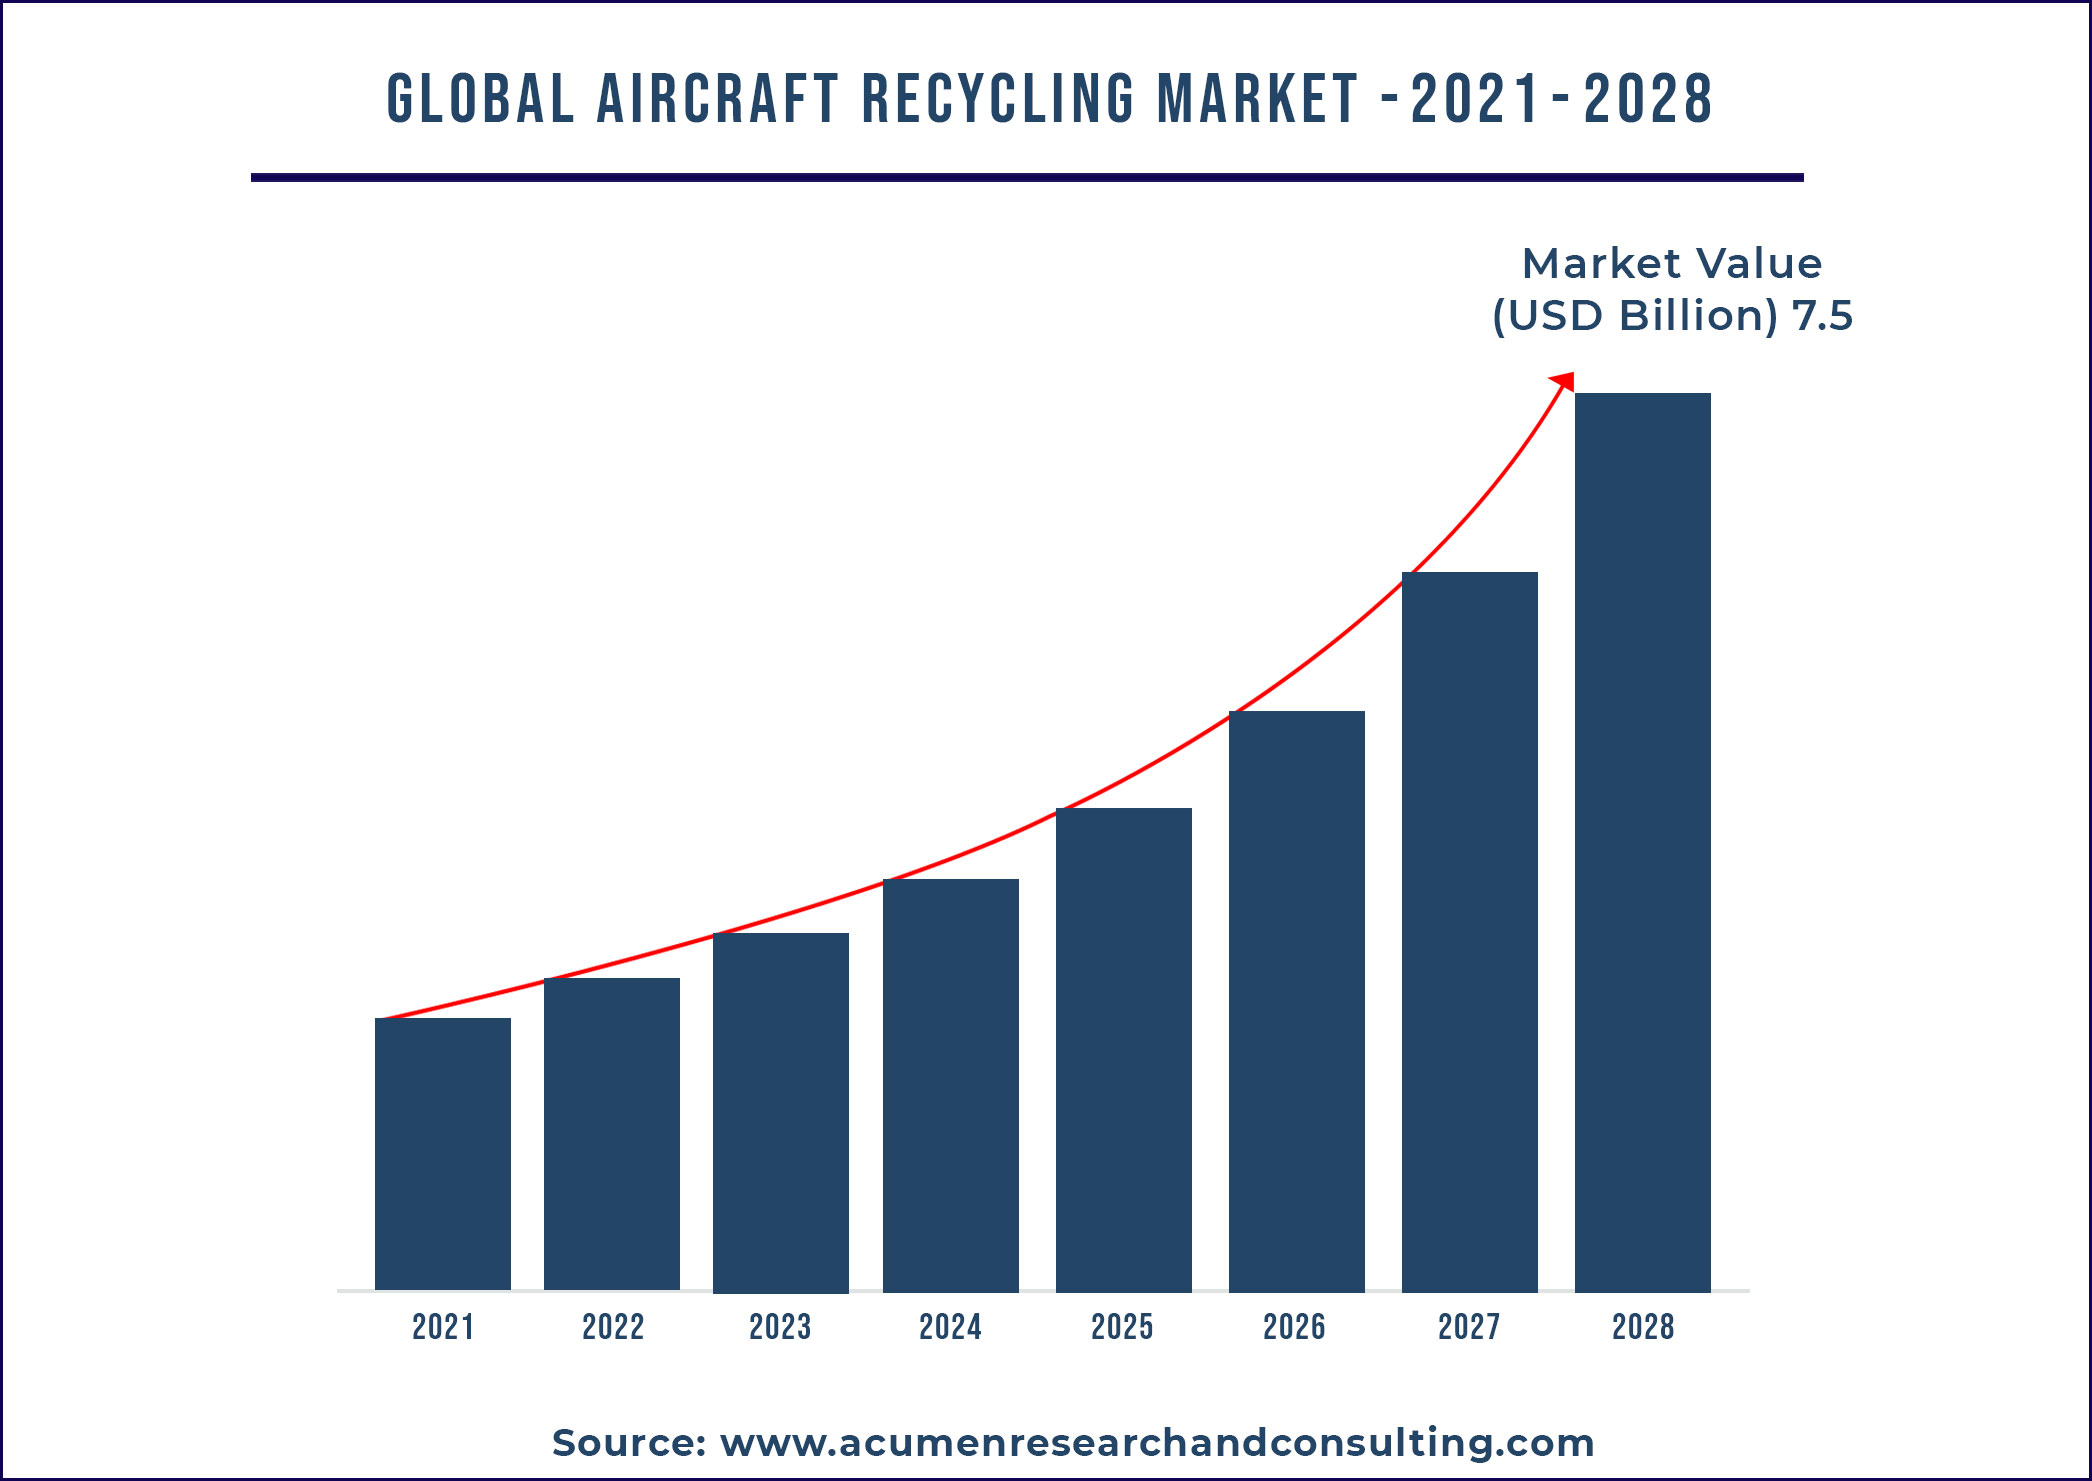 Aircraft Recycling Market Size 2021-2028